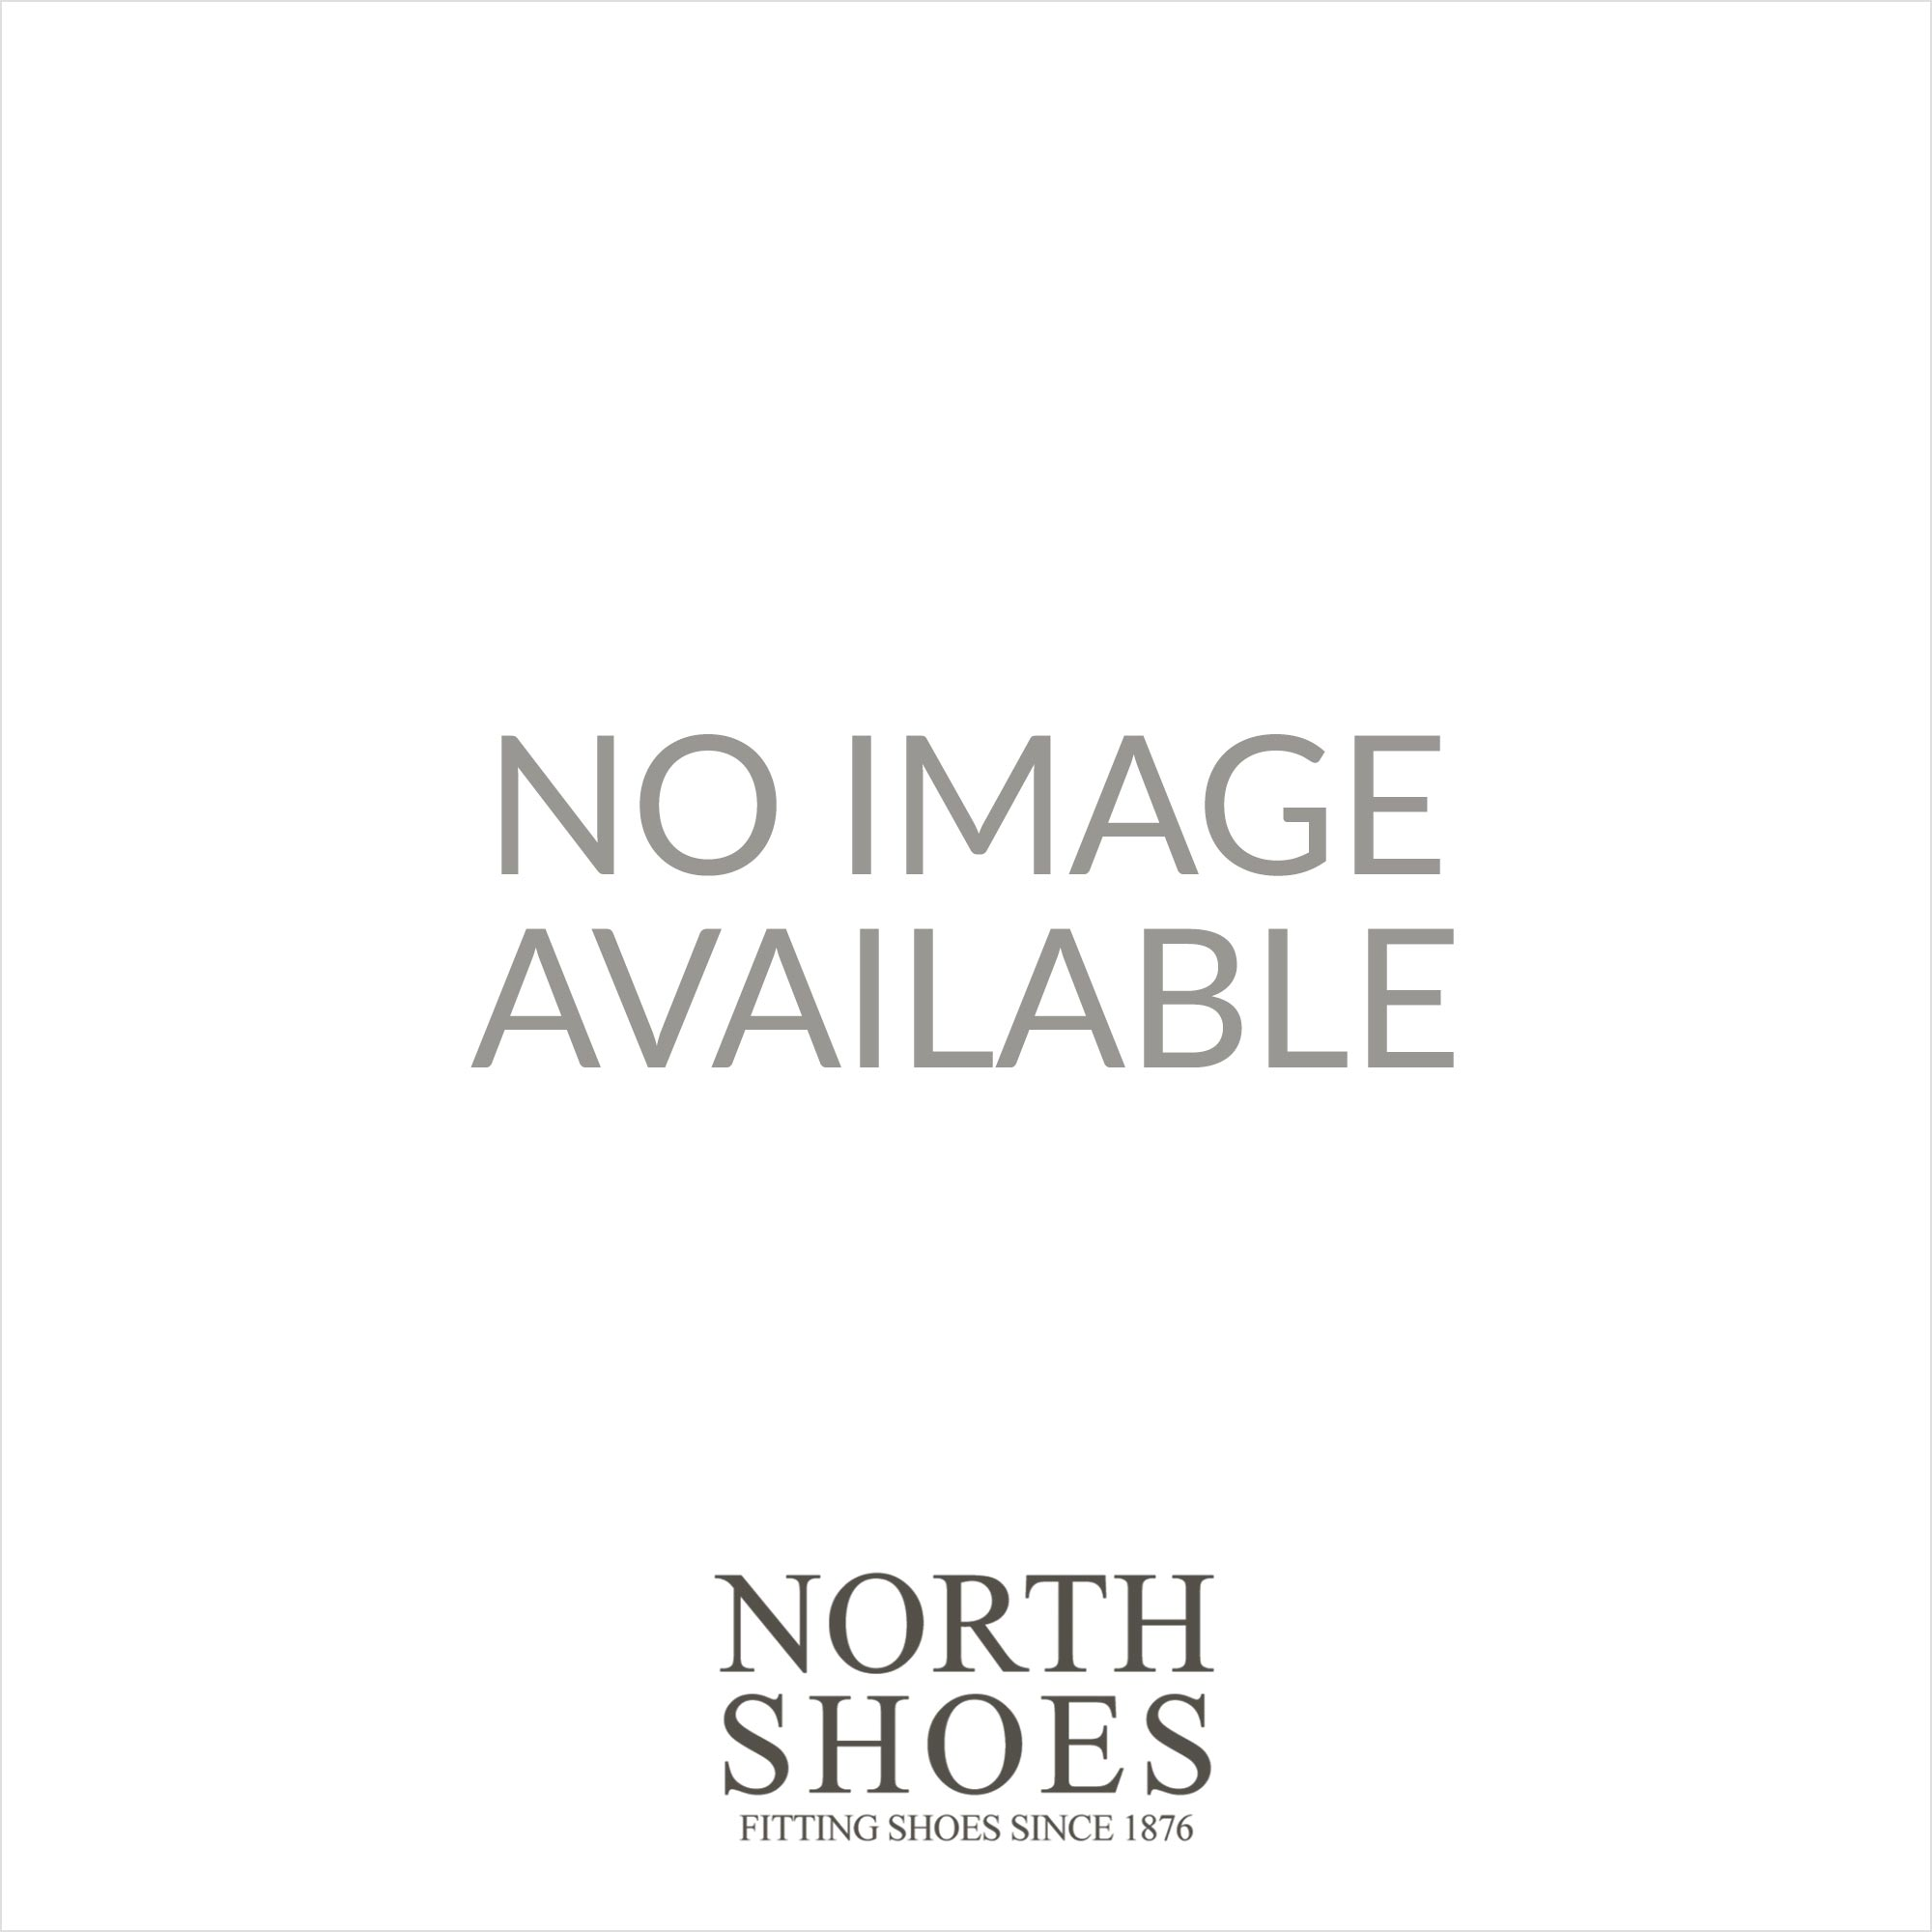 b10341b6bb84 Converse Chuck Taylor All Star M7652C White Canvas Unisex Lace Up Shoe -  Converse from North Shoes UK